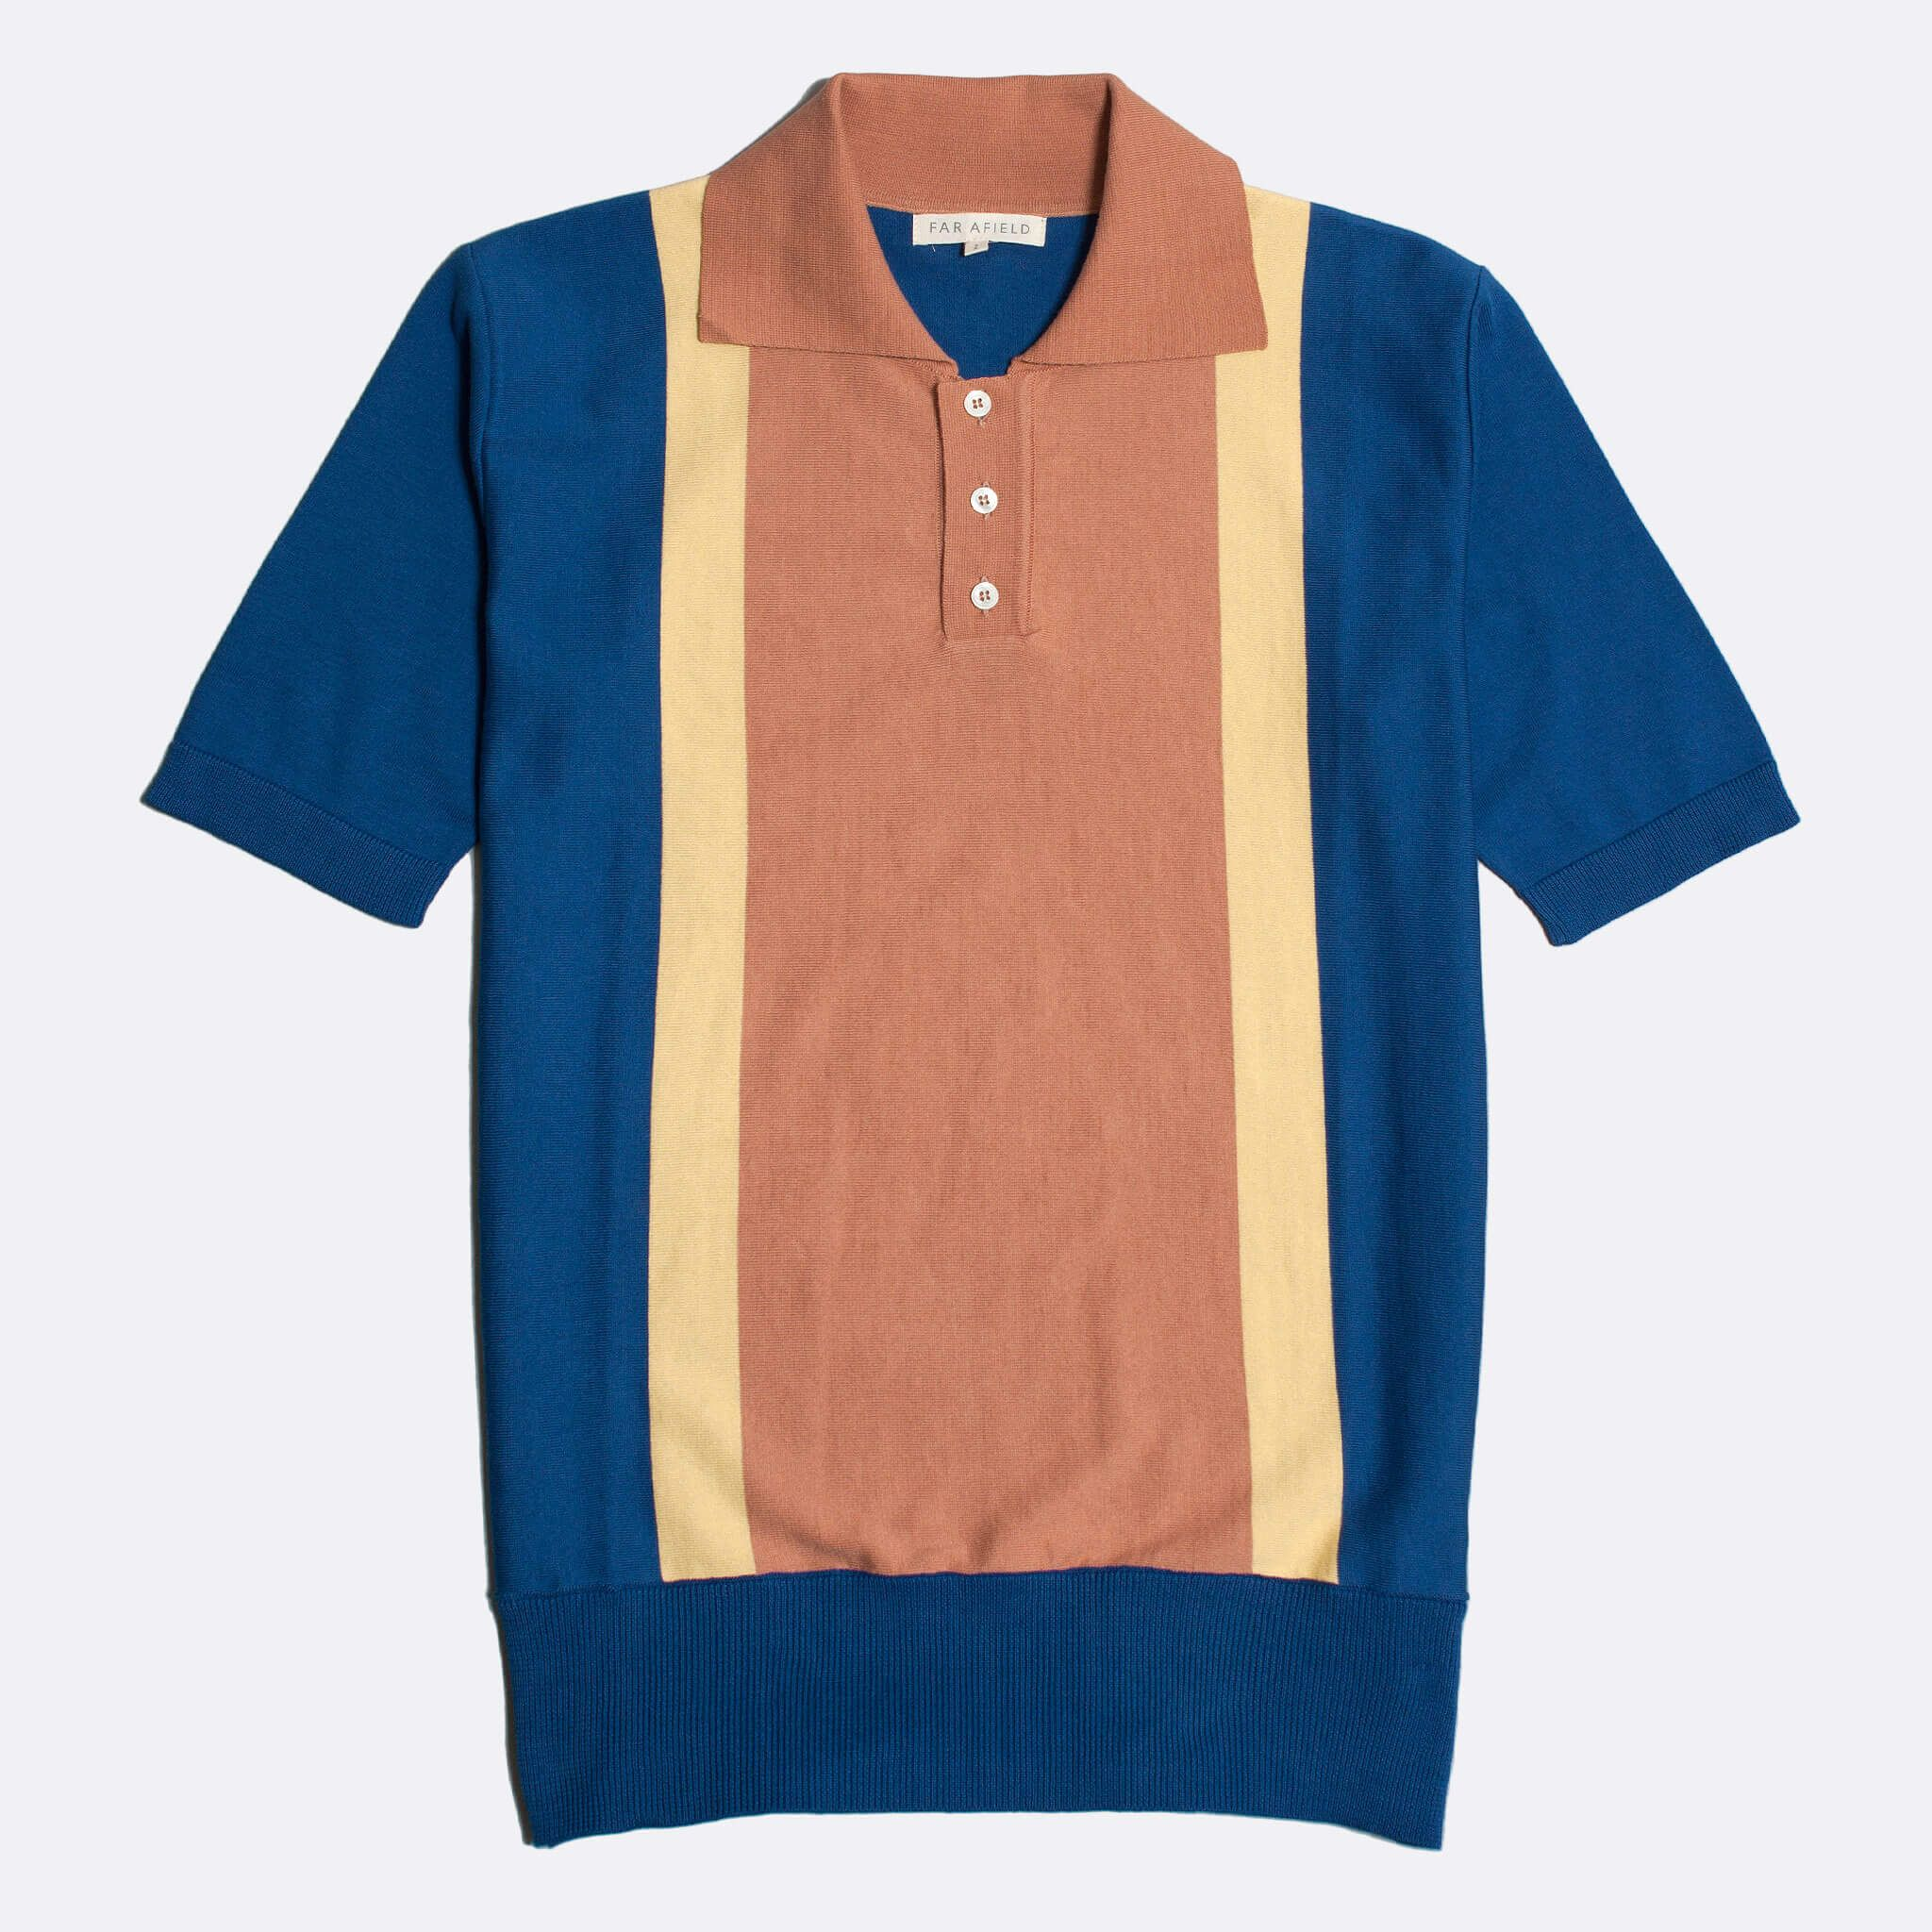 Far Afield Cole Trio Short Sleeve Polo a Blue / Yellow / Orange BCI Cotton Fabric Italian Mod Knitwear Smart Casual